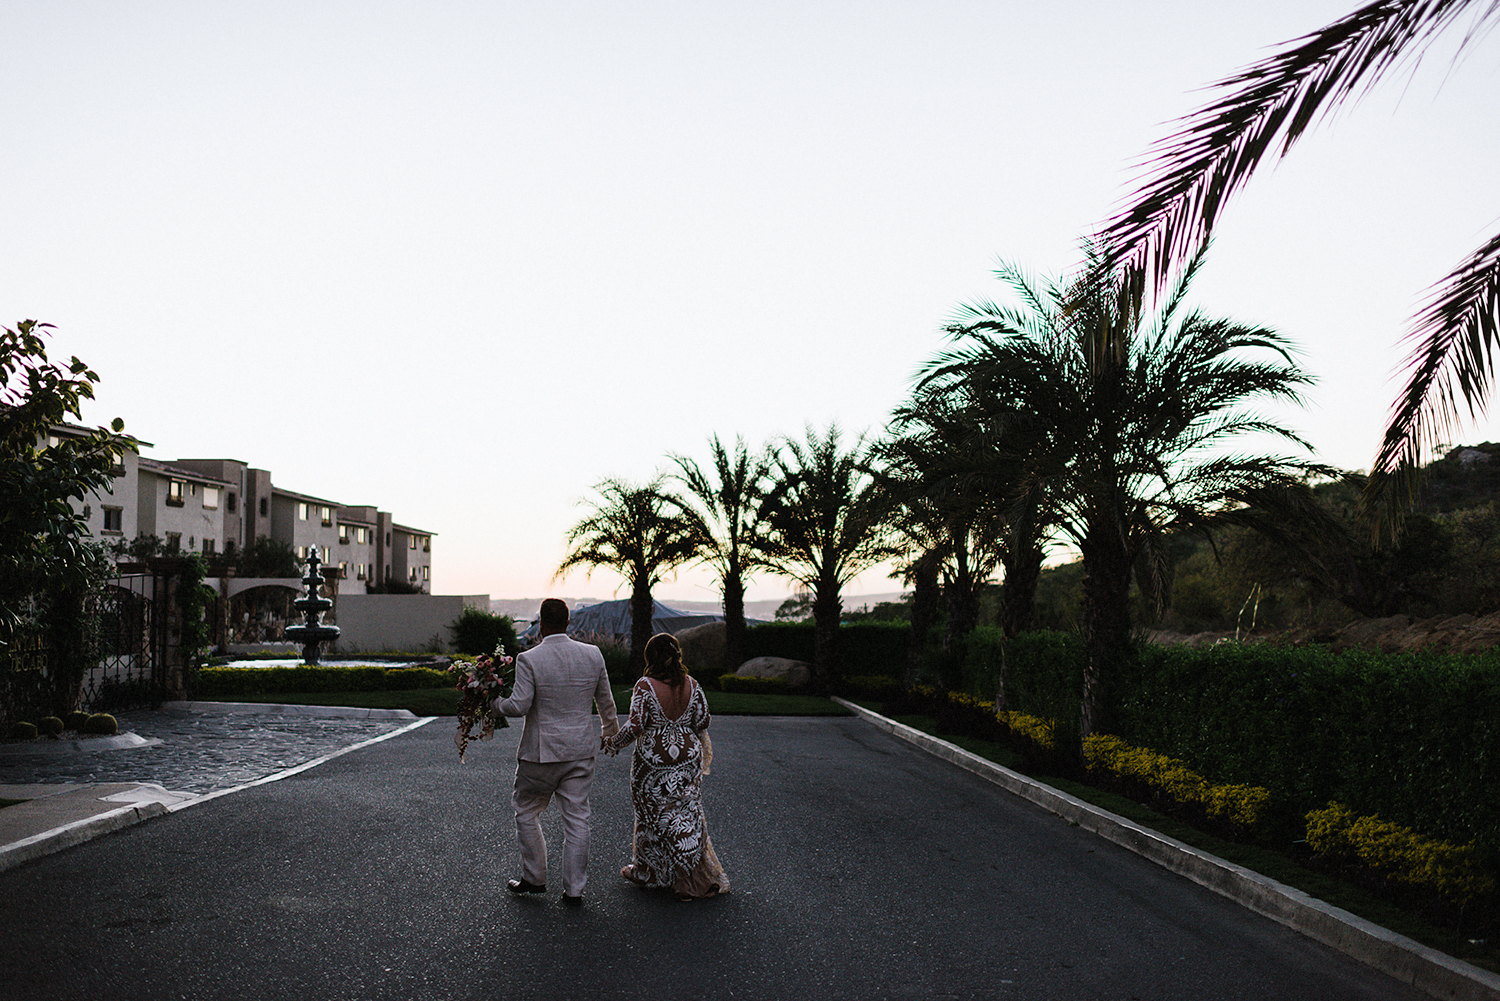 cabo-san-lucas-ventanas-private-residence-alternative-toronto-wedding-photographer-documentary-photojournalistic-portraits-bride-and-groom-portraits-intimate-real-moments-timeless-romantic-silhouetted-sunset-walking.jpg